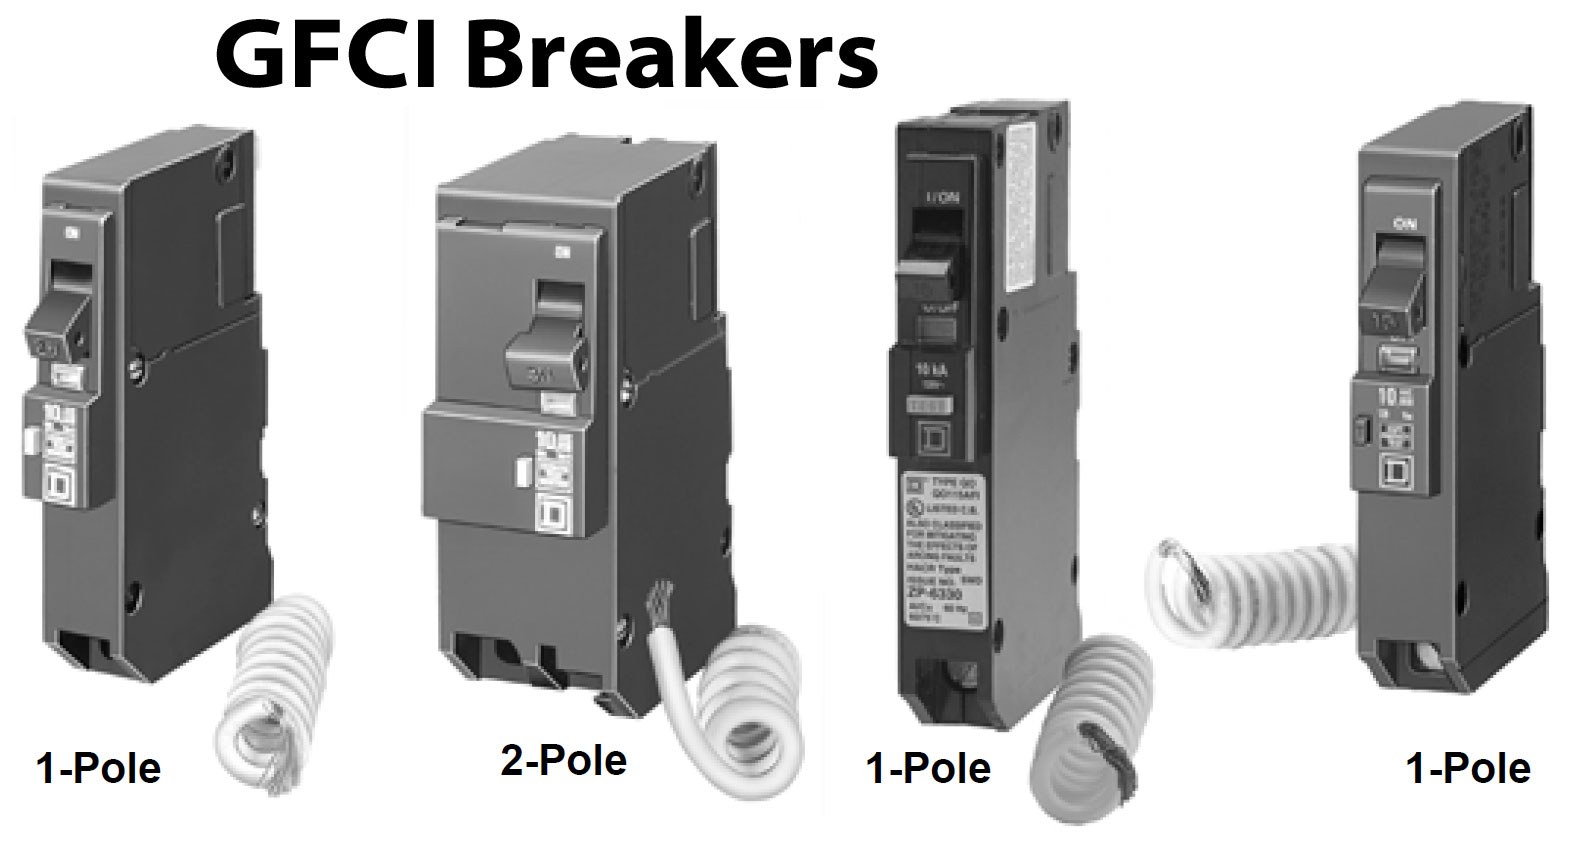 how to install and troubleshoot gfci 220 Circuit Breaker Wiring Diagram larger image, gfci circuit breakers